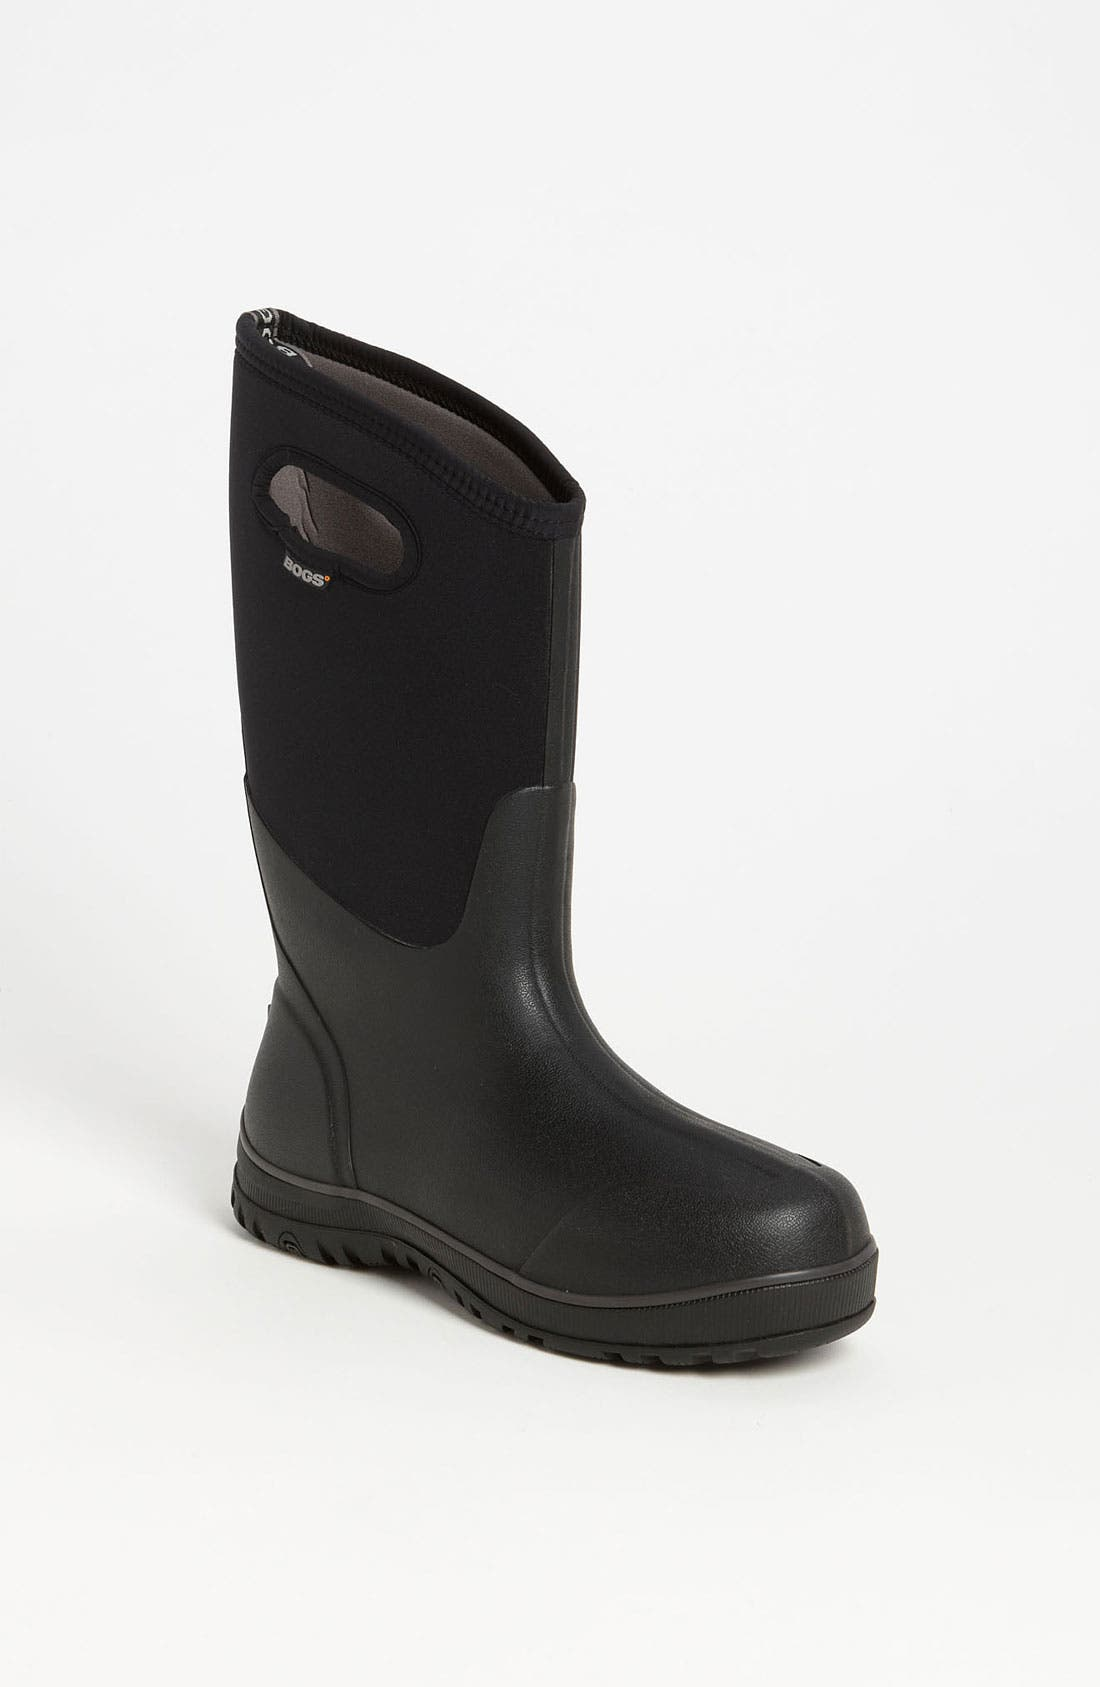 Alternate Image 1 Selected - Bogs 'Ultra High' Rain Boot   (Online Only) (Men)